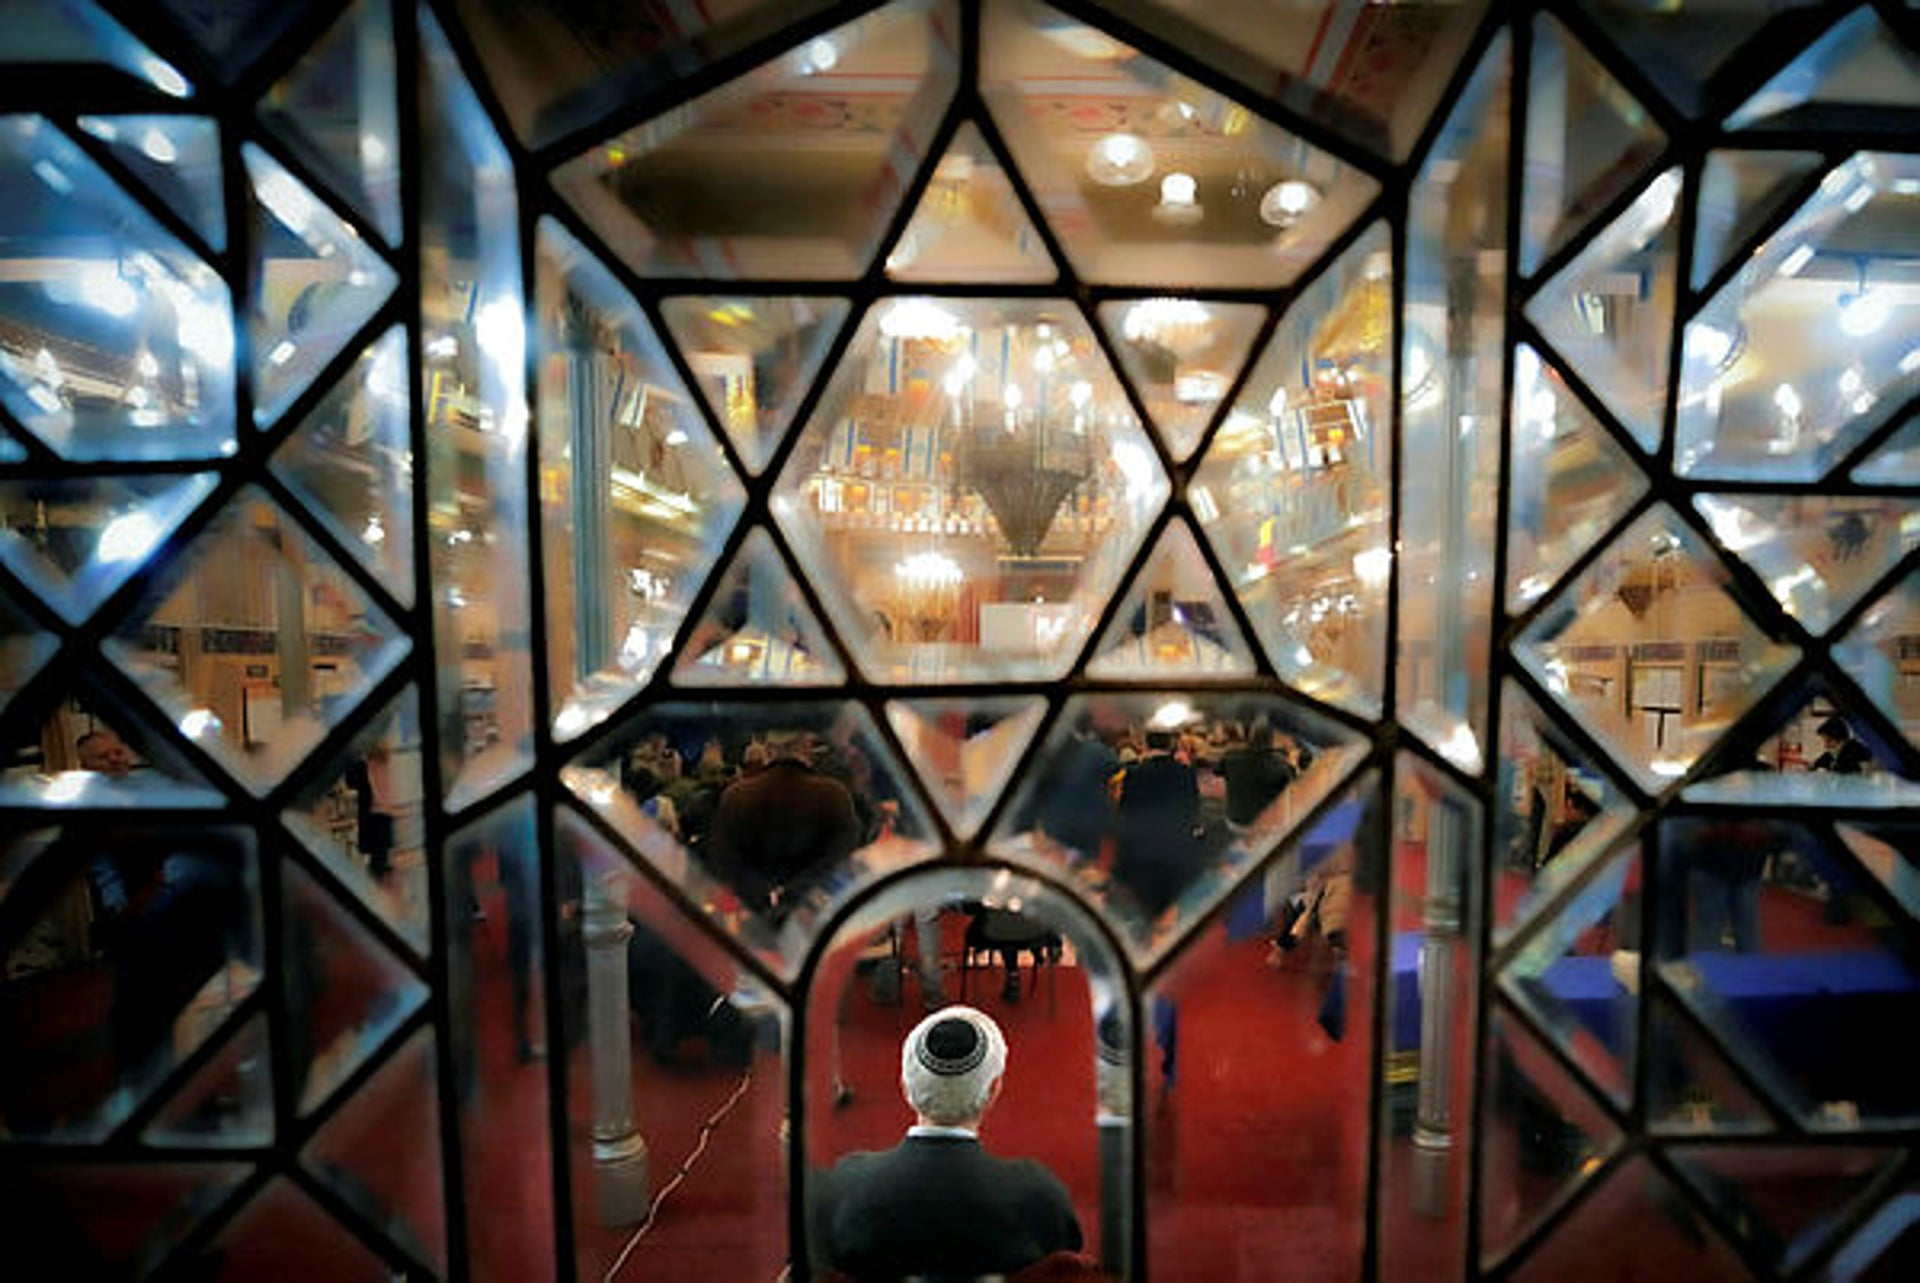 A commemoration service in January at the Great Synagogue in Bucharest, Romania for those killed in the 1941 pogrom.